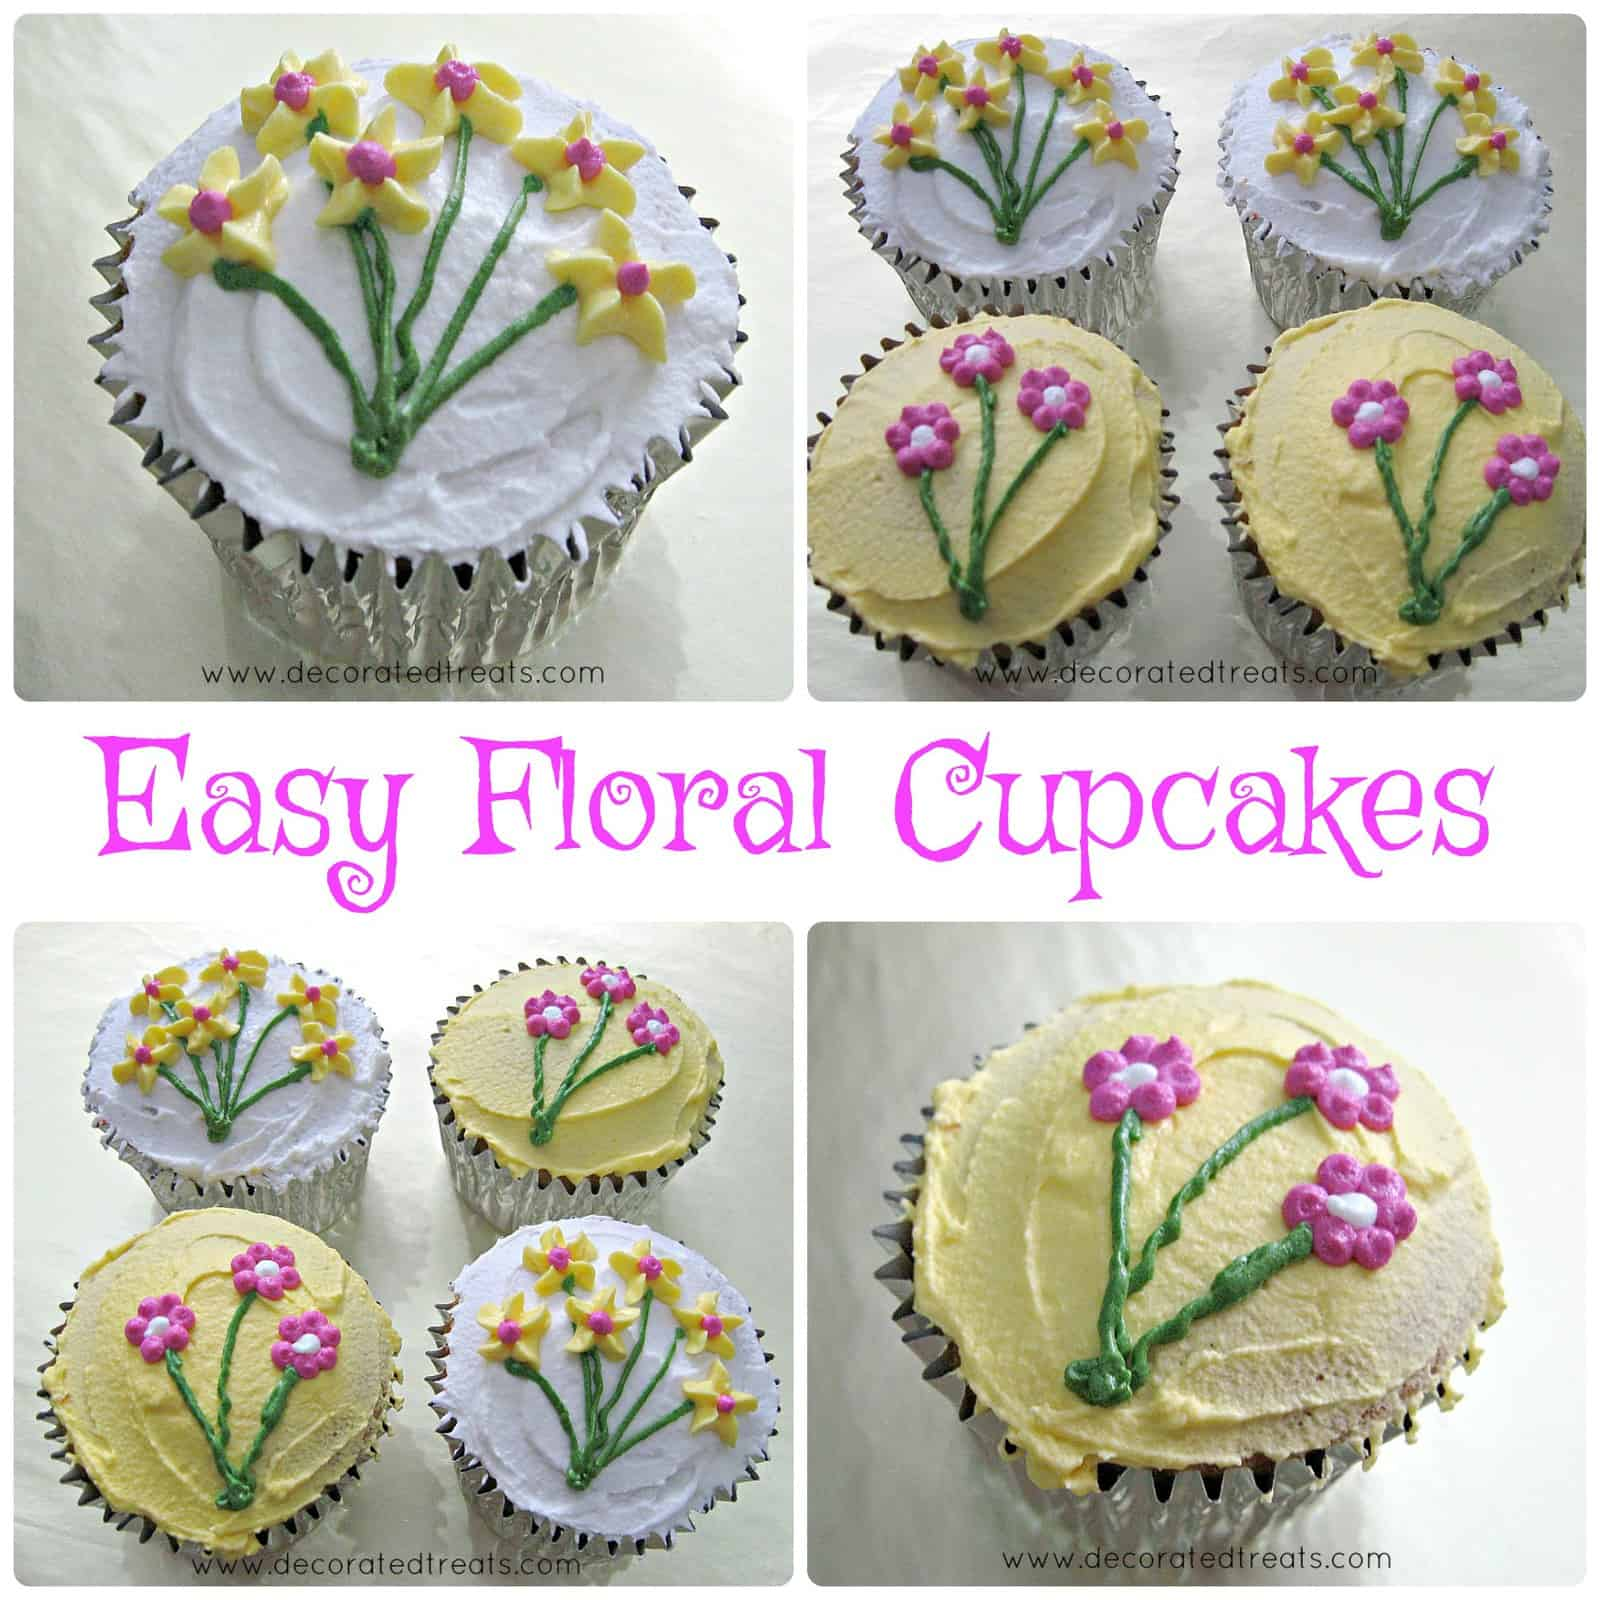 Poster for easy cupcakes with simple floral design